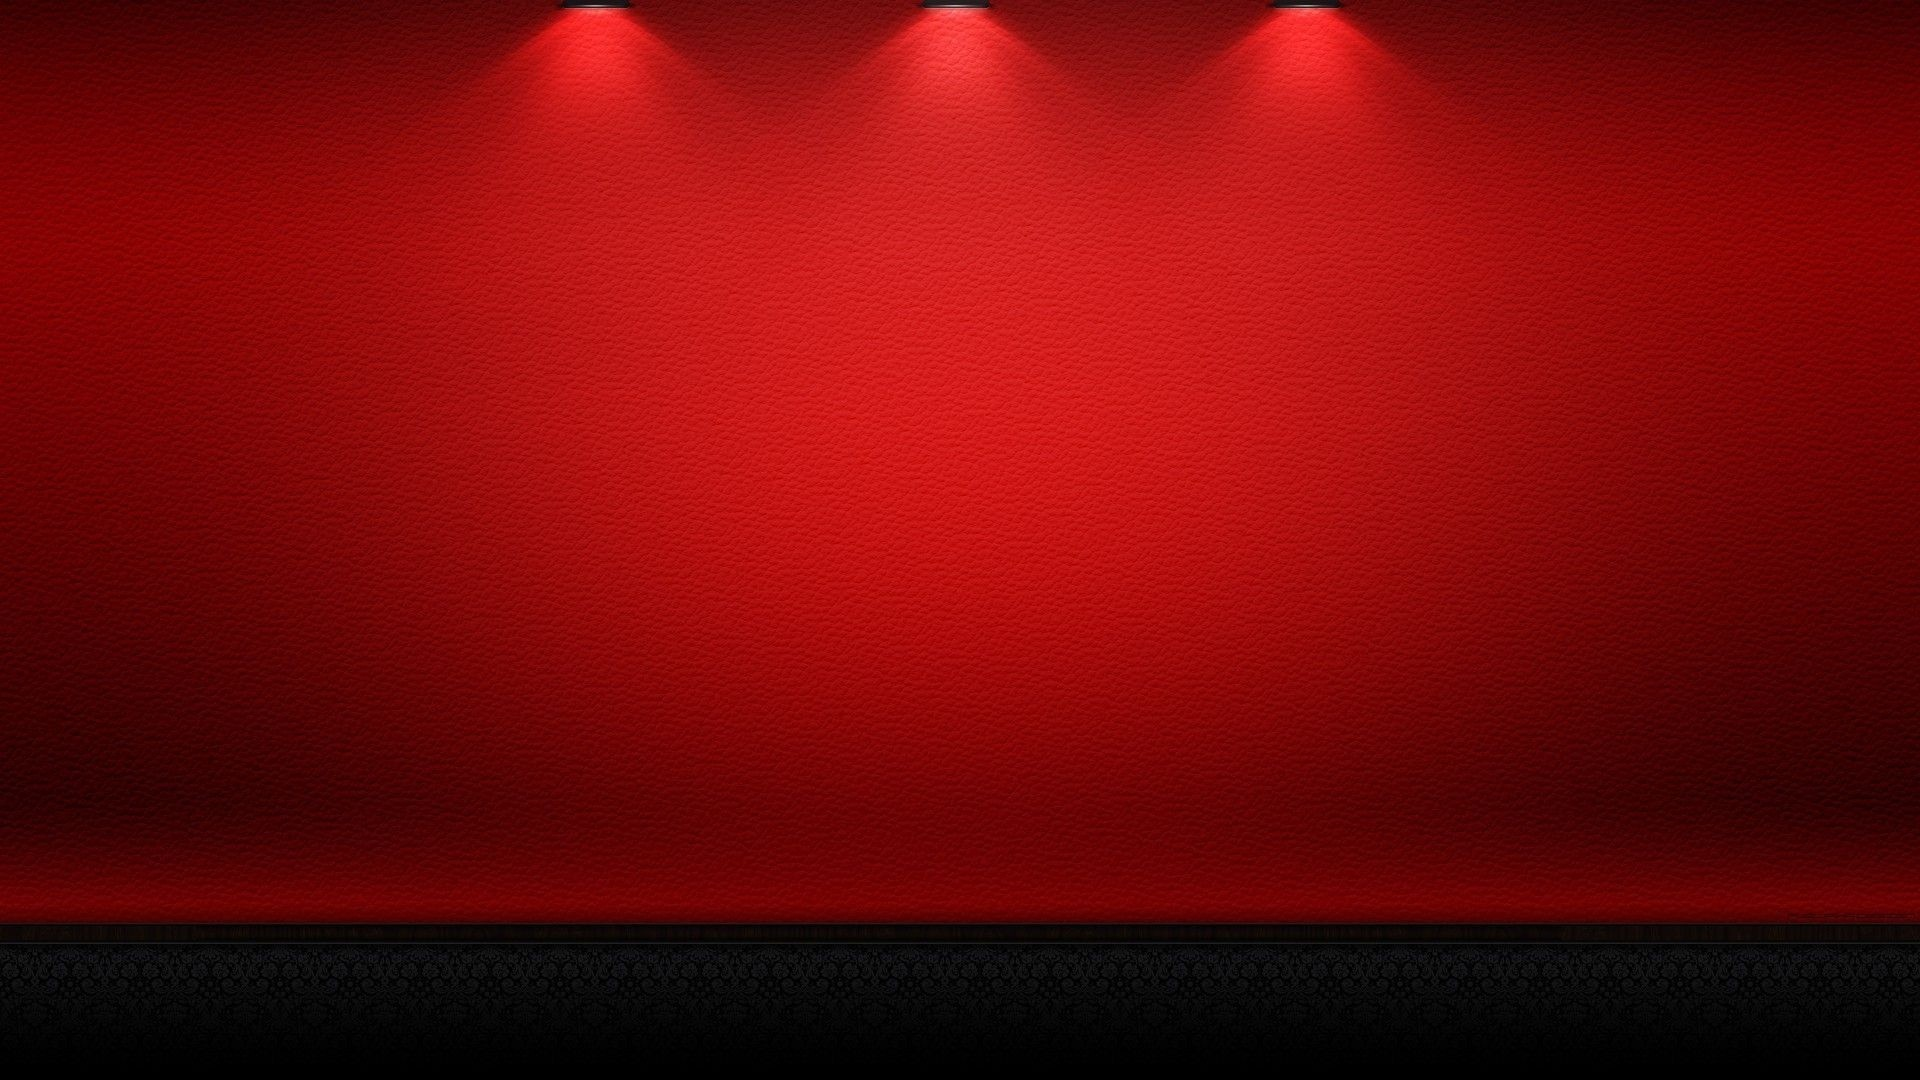 1920x1080 Red plain wall with lighting on up HD wallpapers